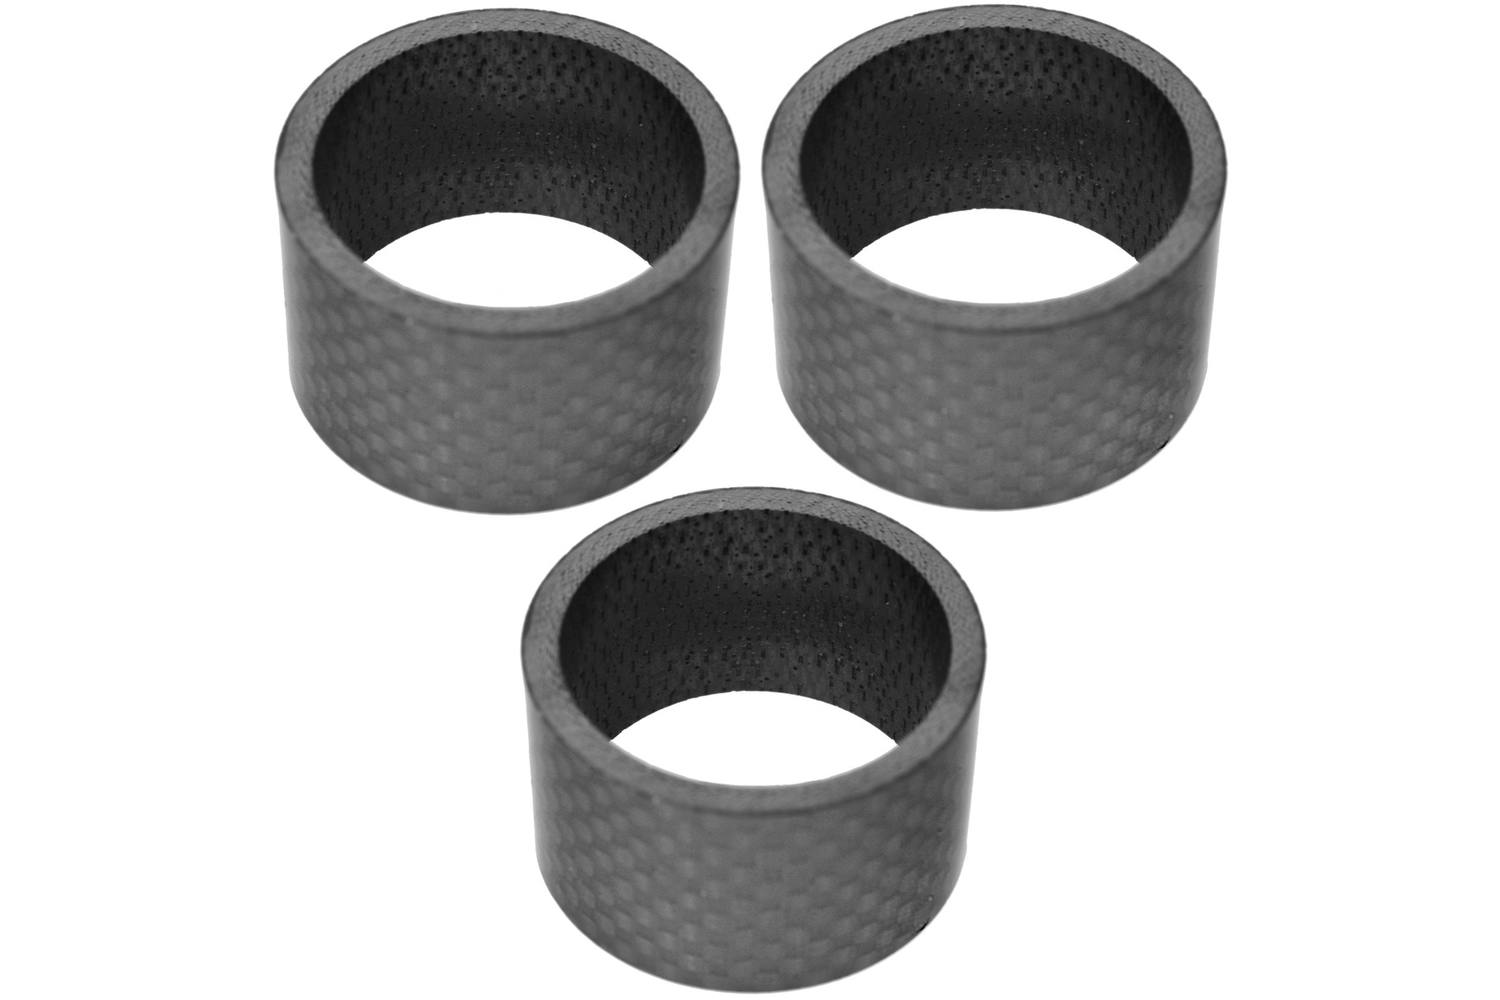 SPACER 20MM CARBON 1-1/8 - 3 ST. 2